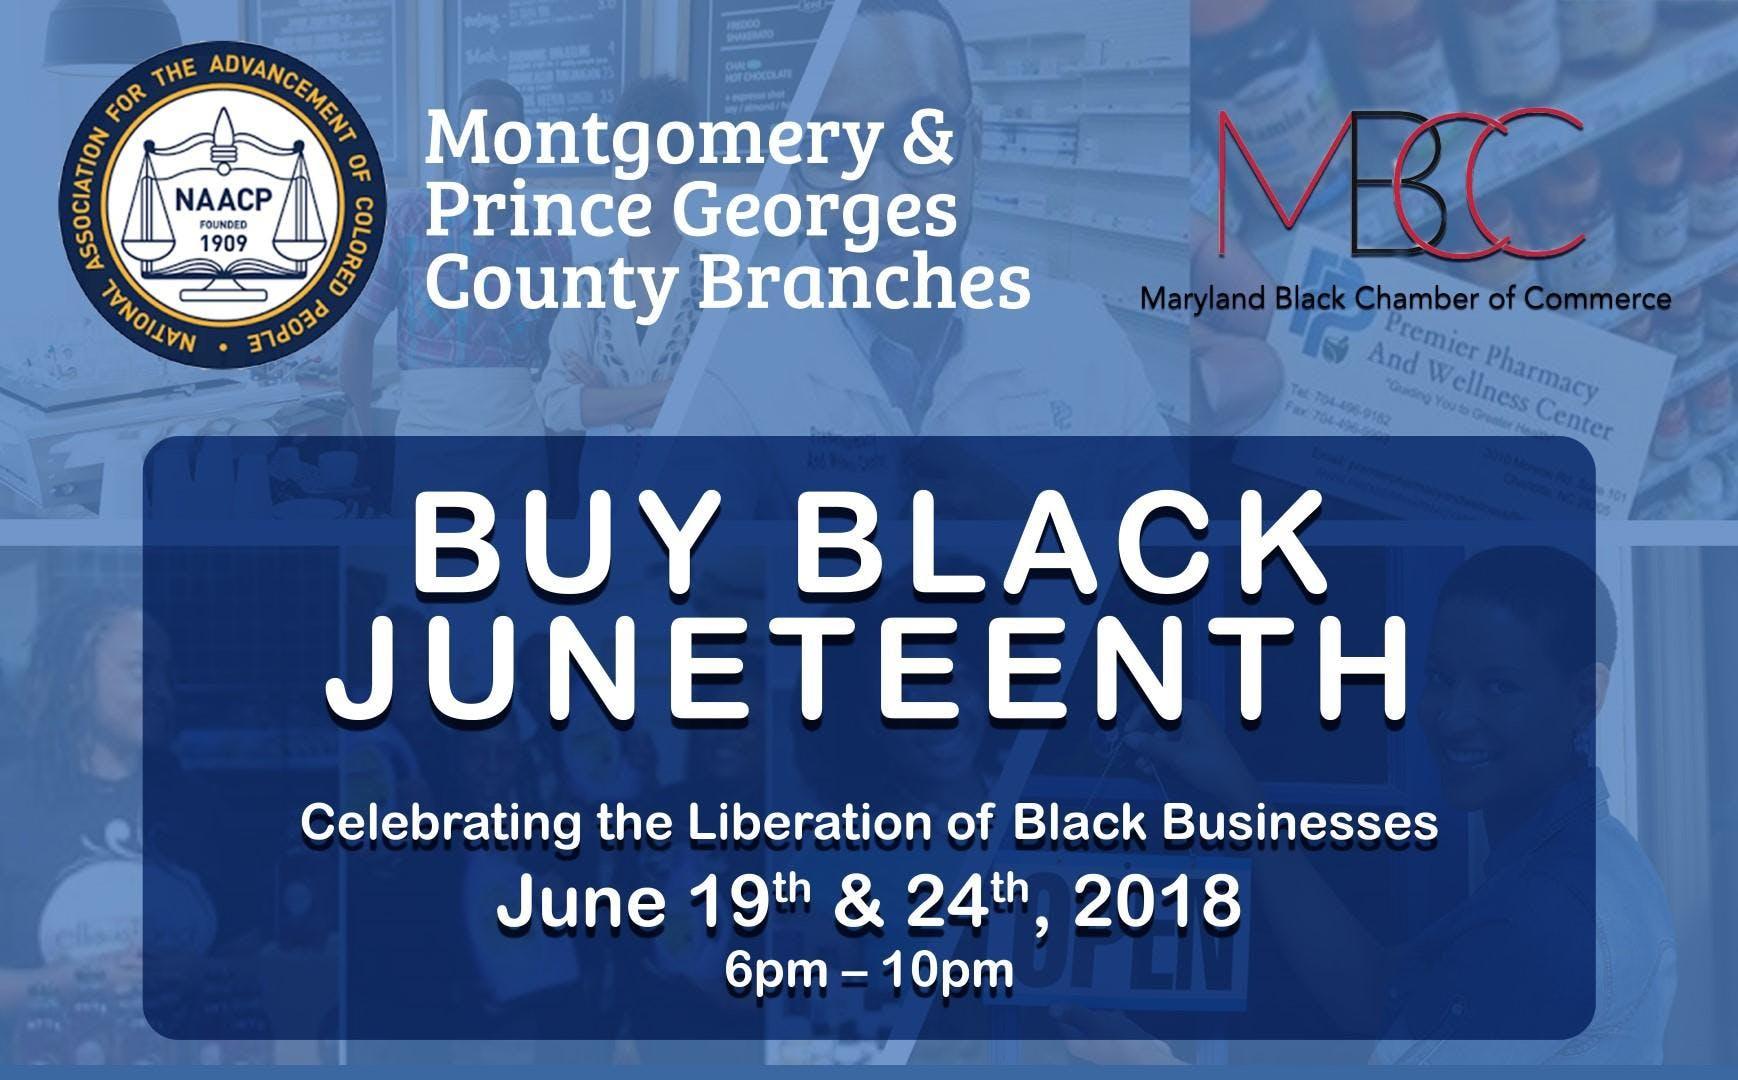 NAACP Buy Black Juneteenth Celebration - June